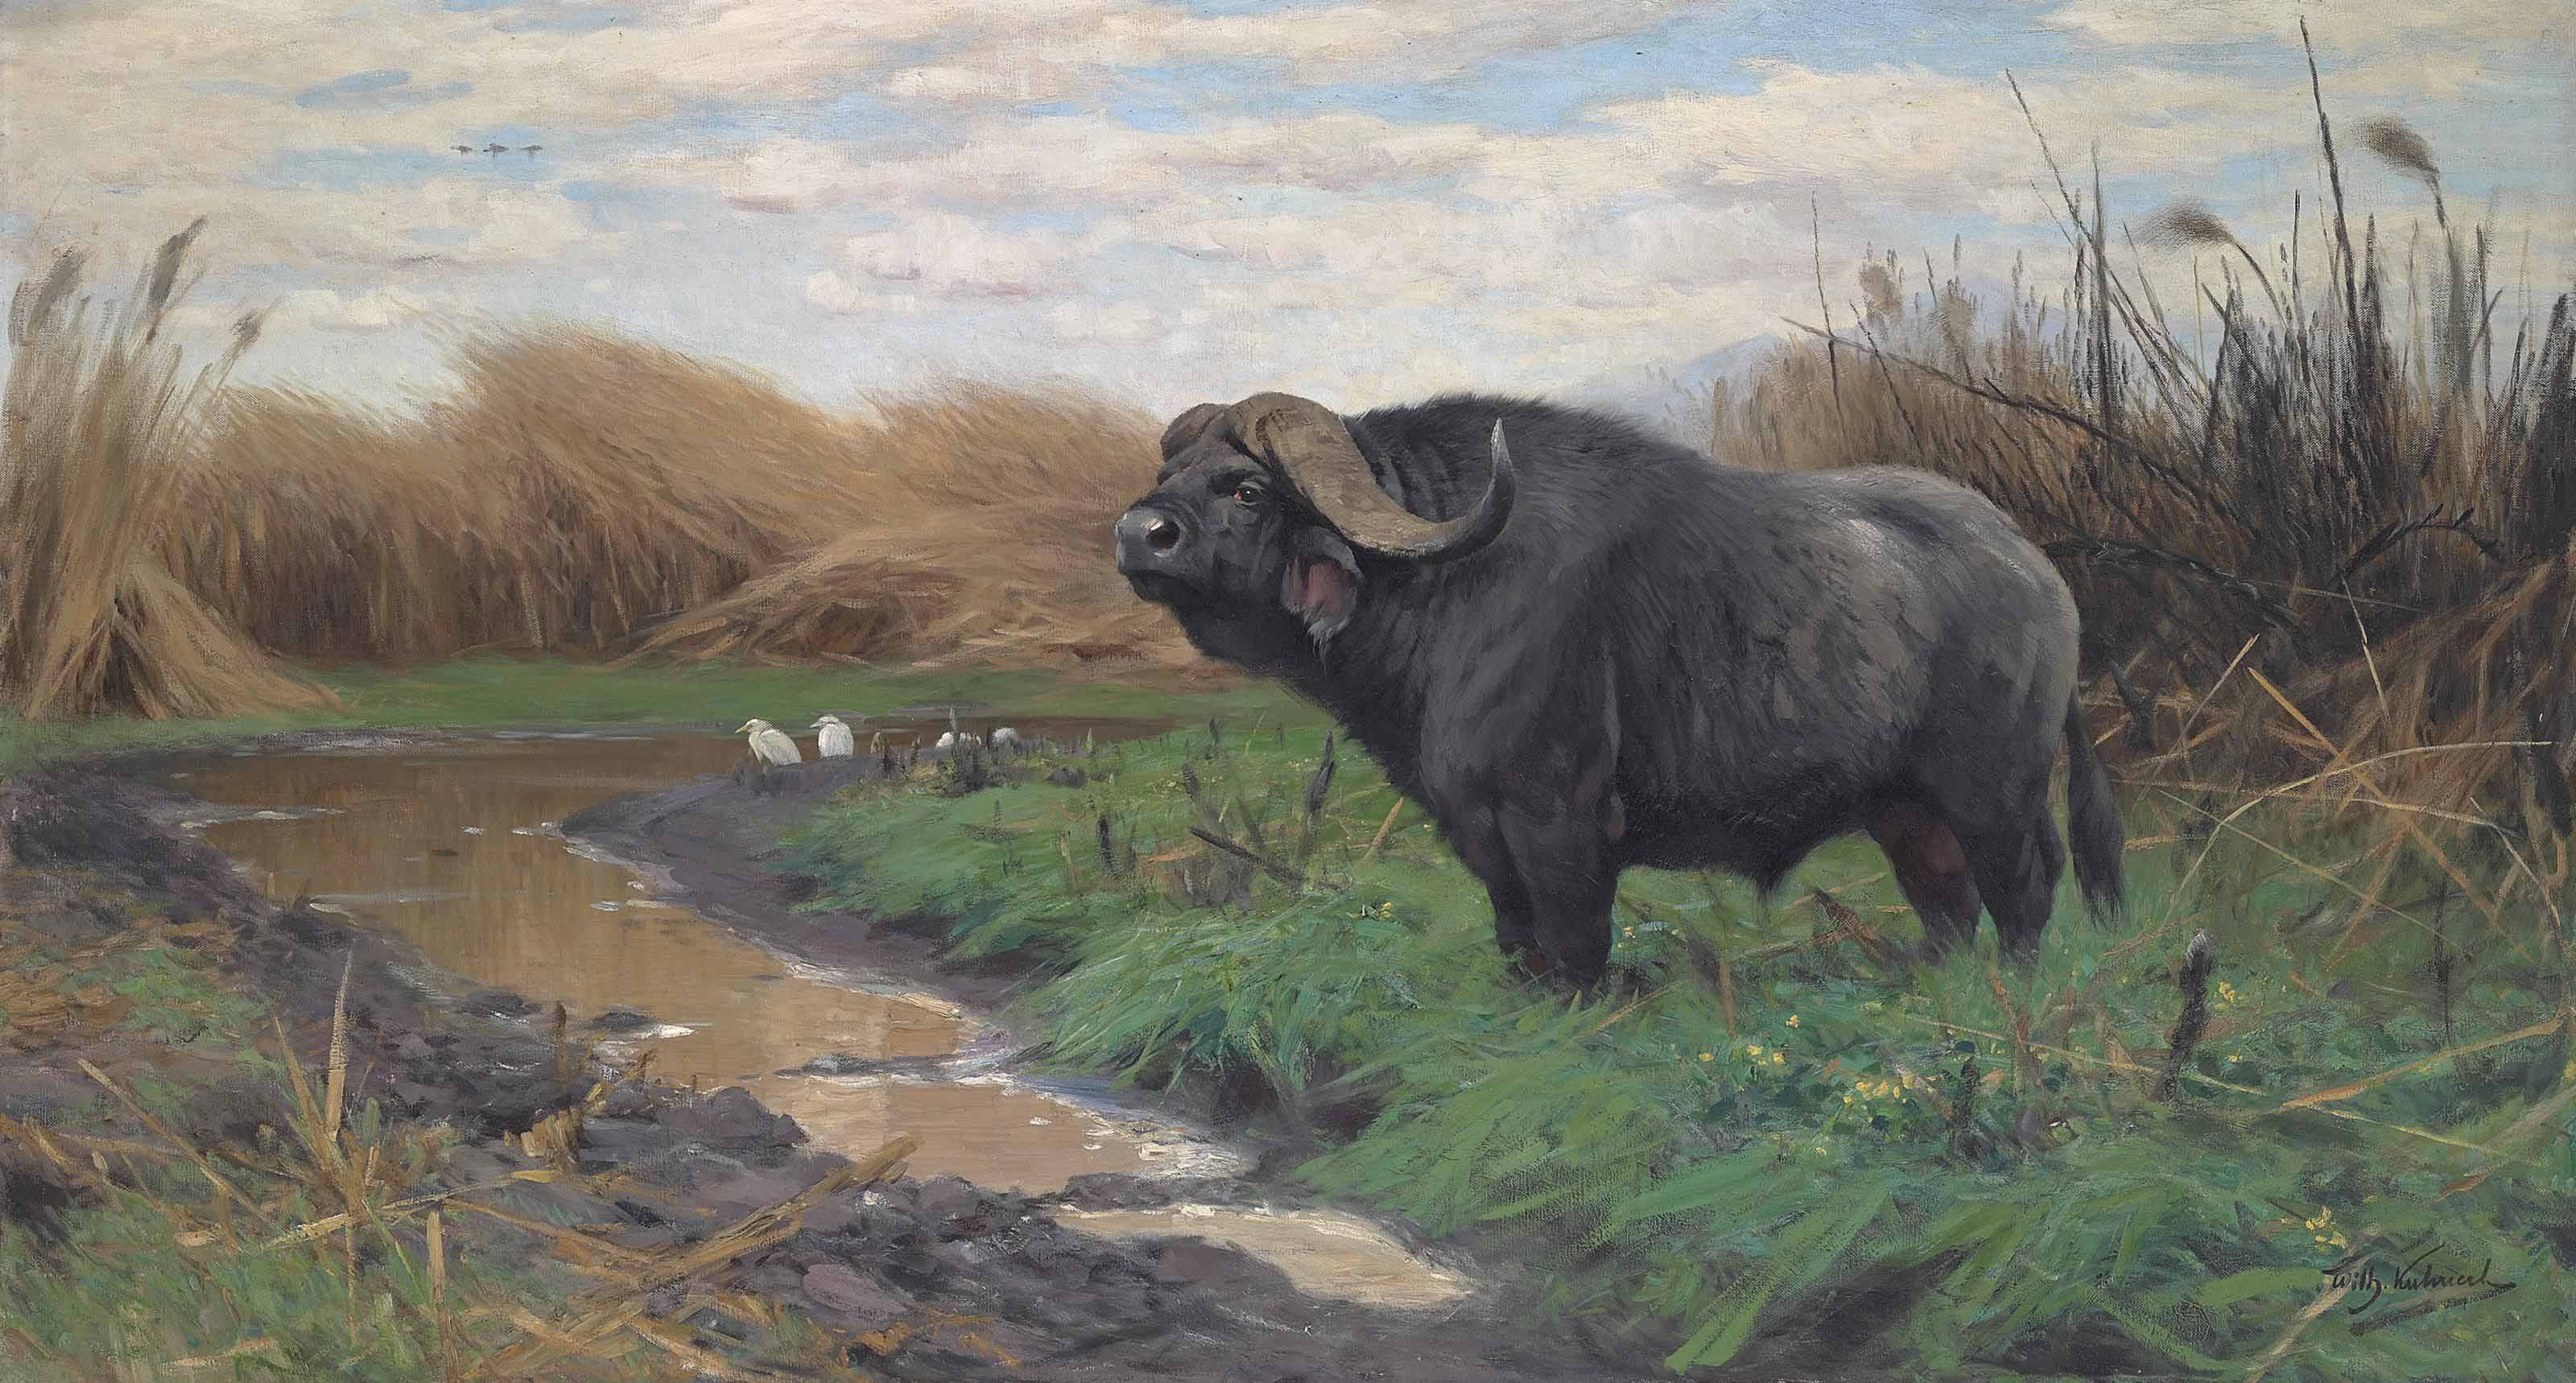 A Buffalo in a marsh